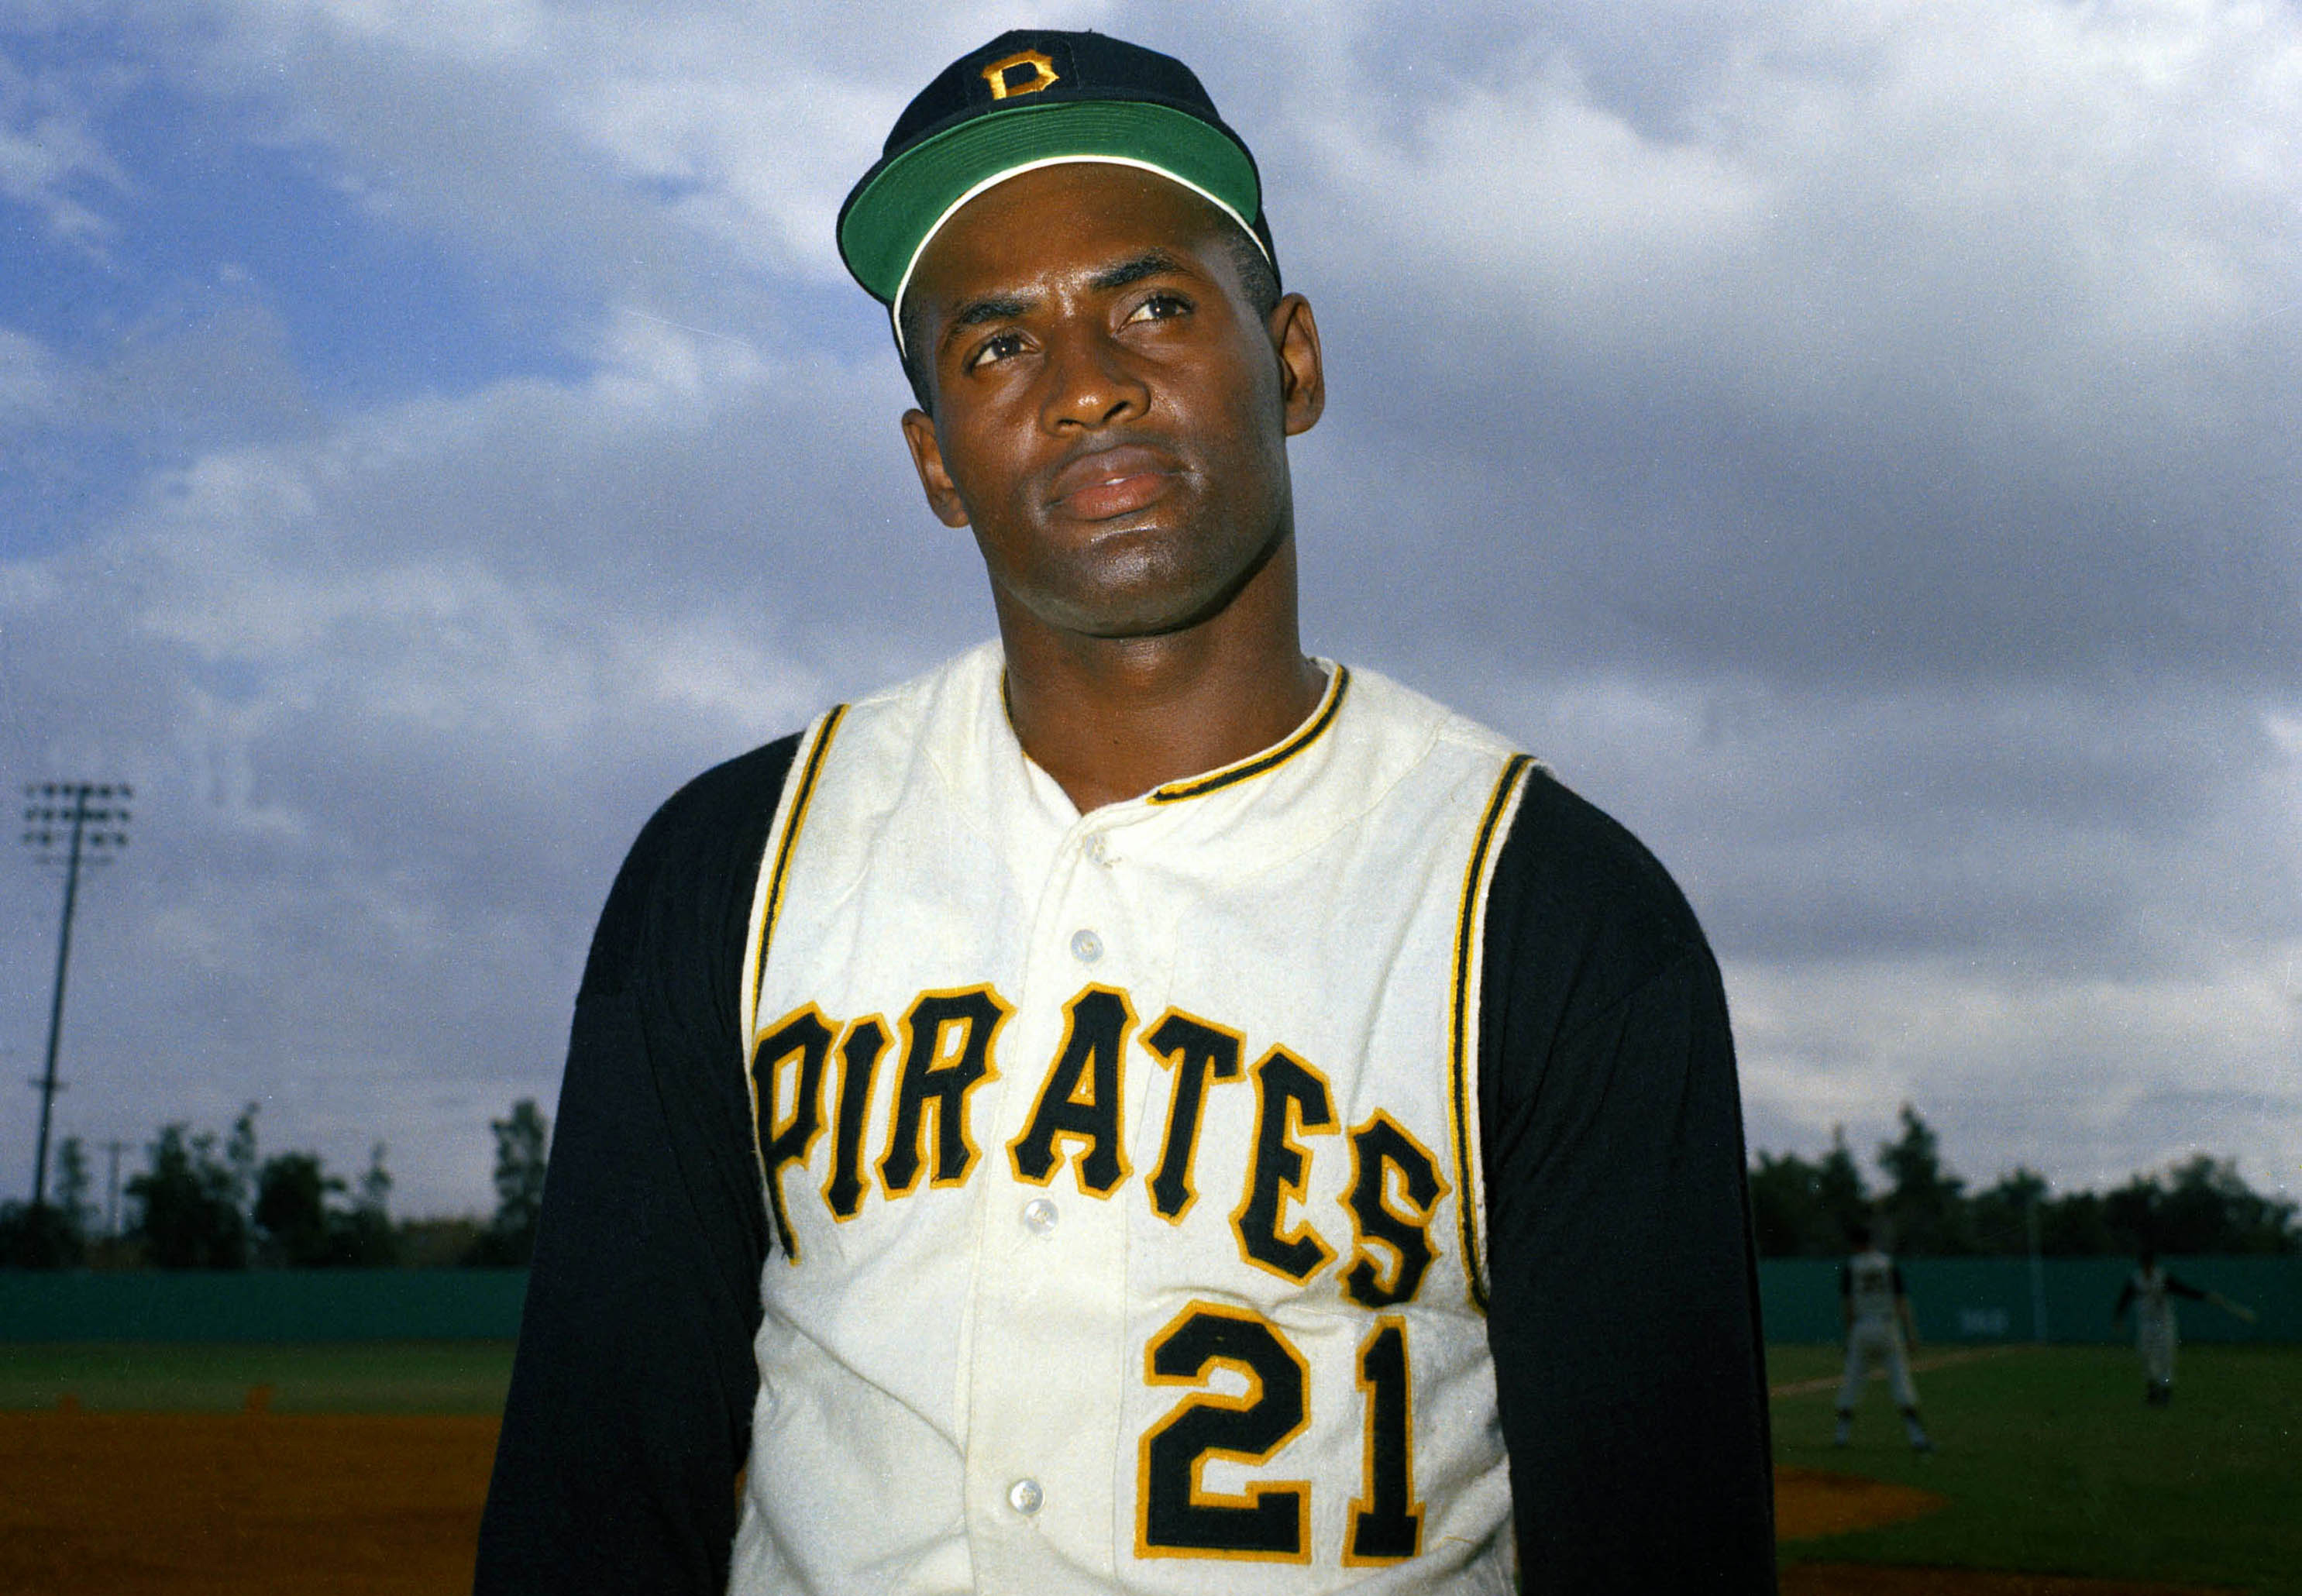 MLB's Pirates will honor Roberto Clemente by wearing his number